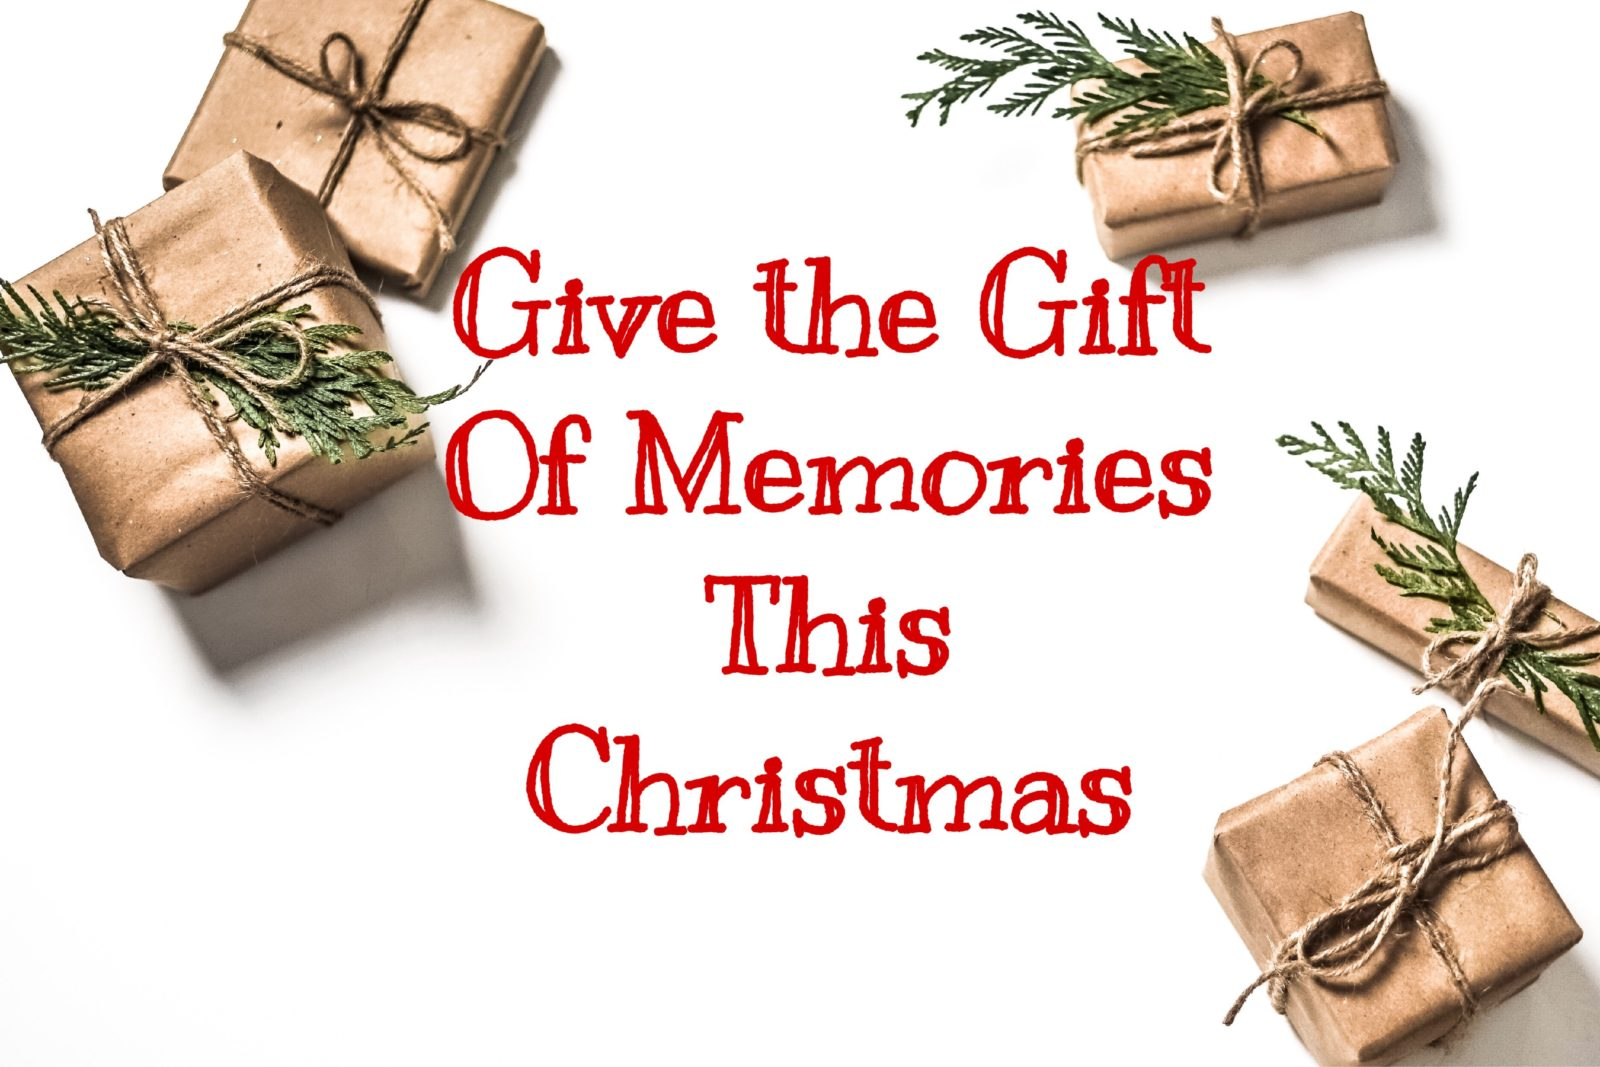 Give the Gift of Memories this Christmas:5 gift ideas